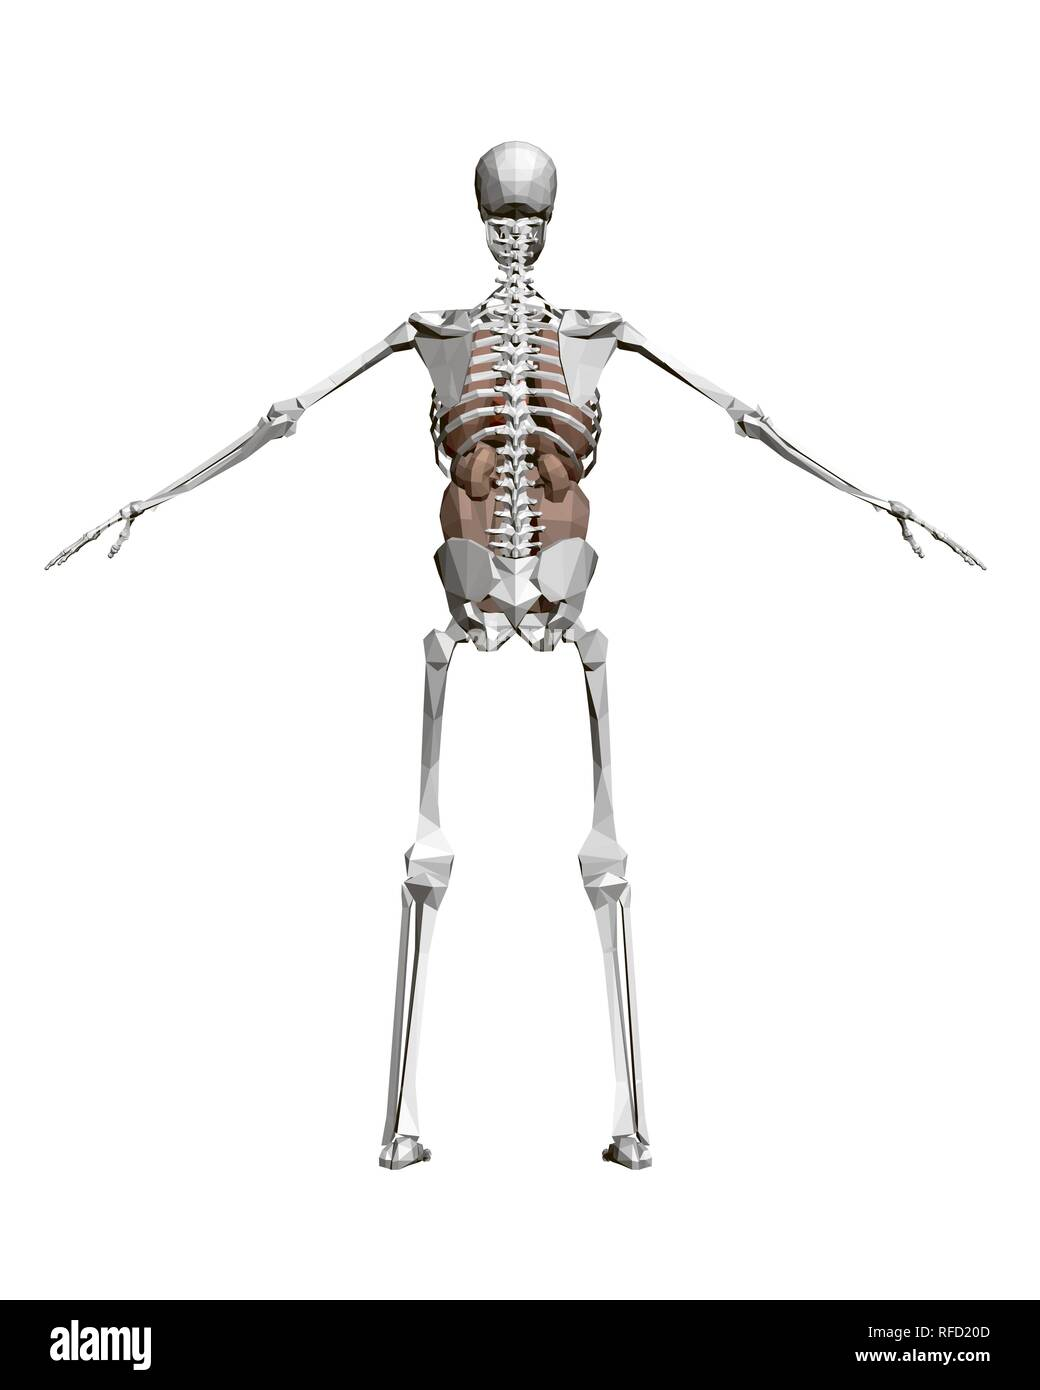 Human Skeleton With Organs 3d Polygonal Human Skeleton With